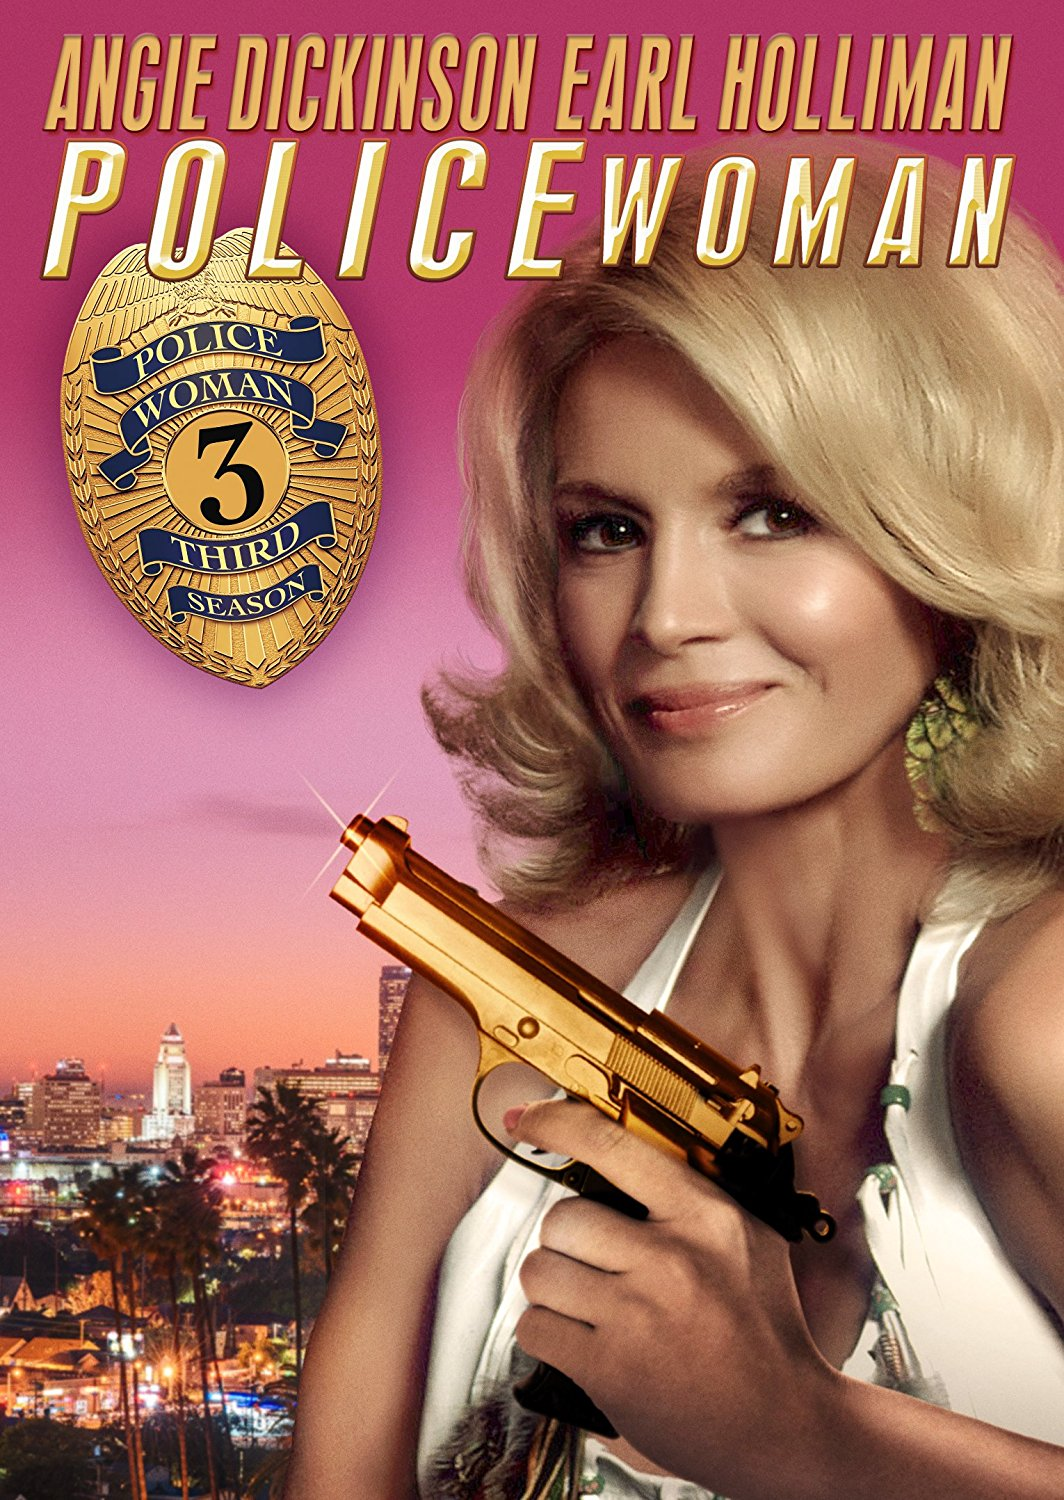 Police Woman Season 3 starring Angie Dickinson featuring The Trick Book guest starring Joan Collins